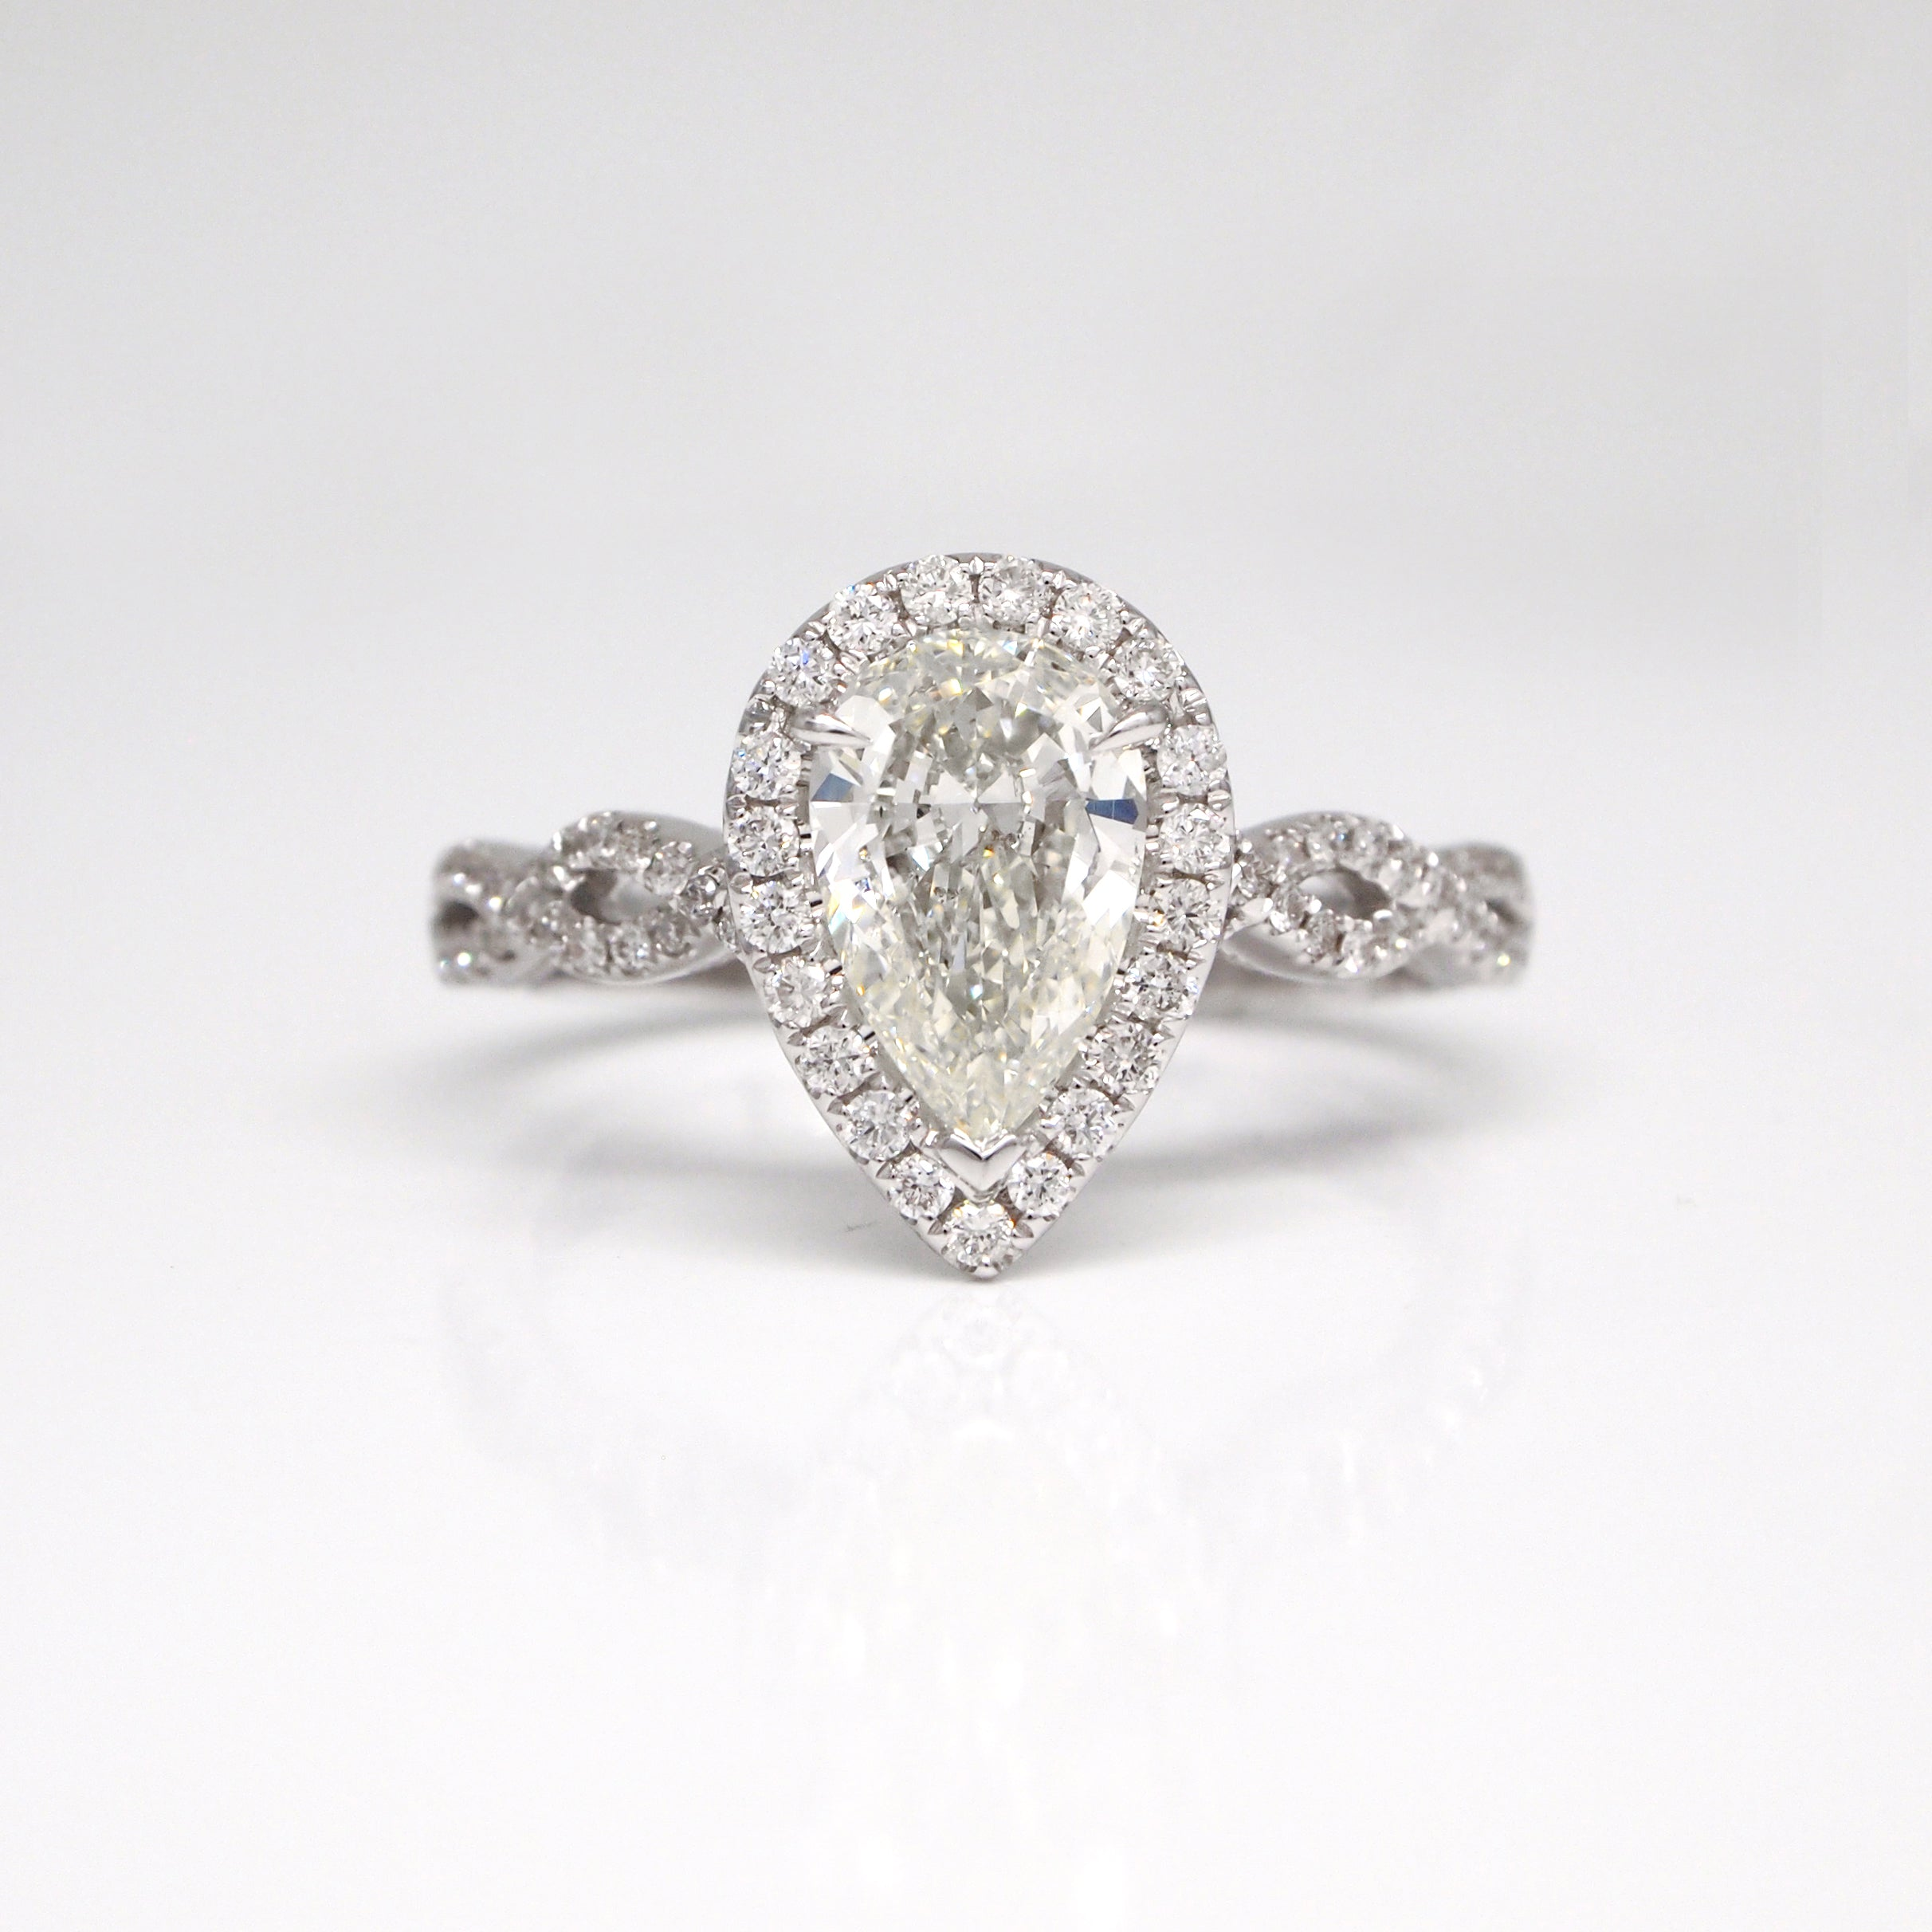 rings wedding diamond shaped platinum mccaul ring collection with twist forged pear engagement goldsmiths